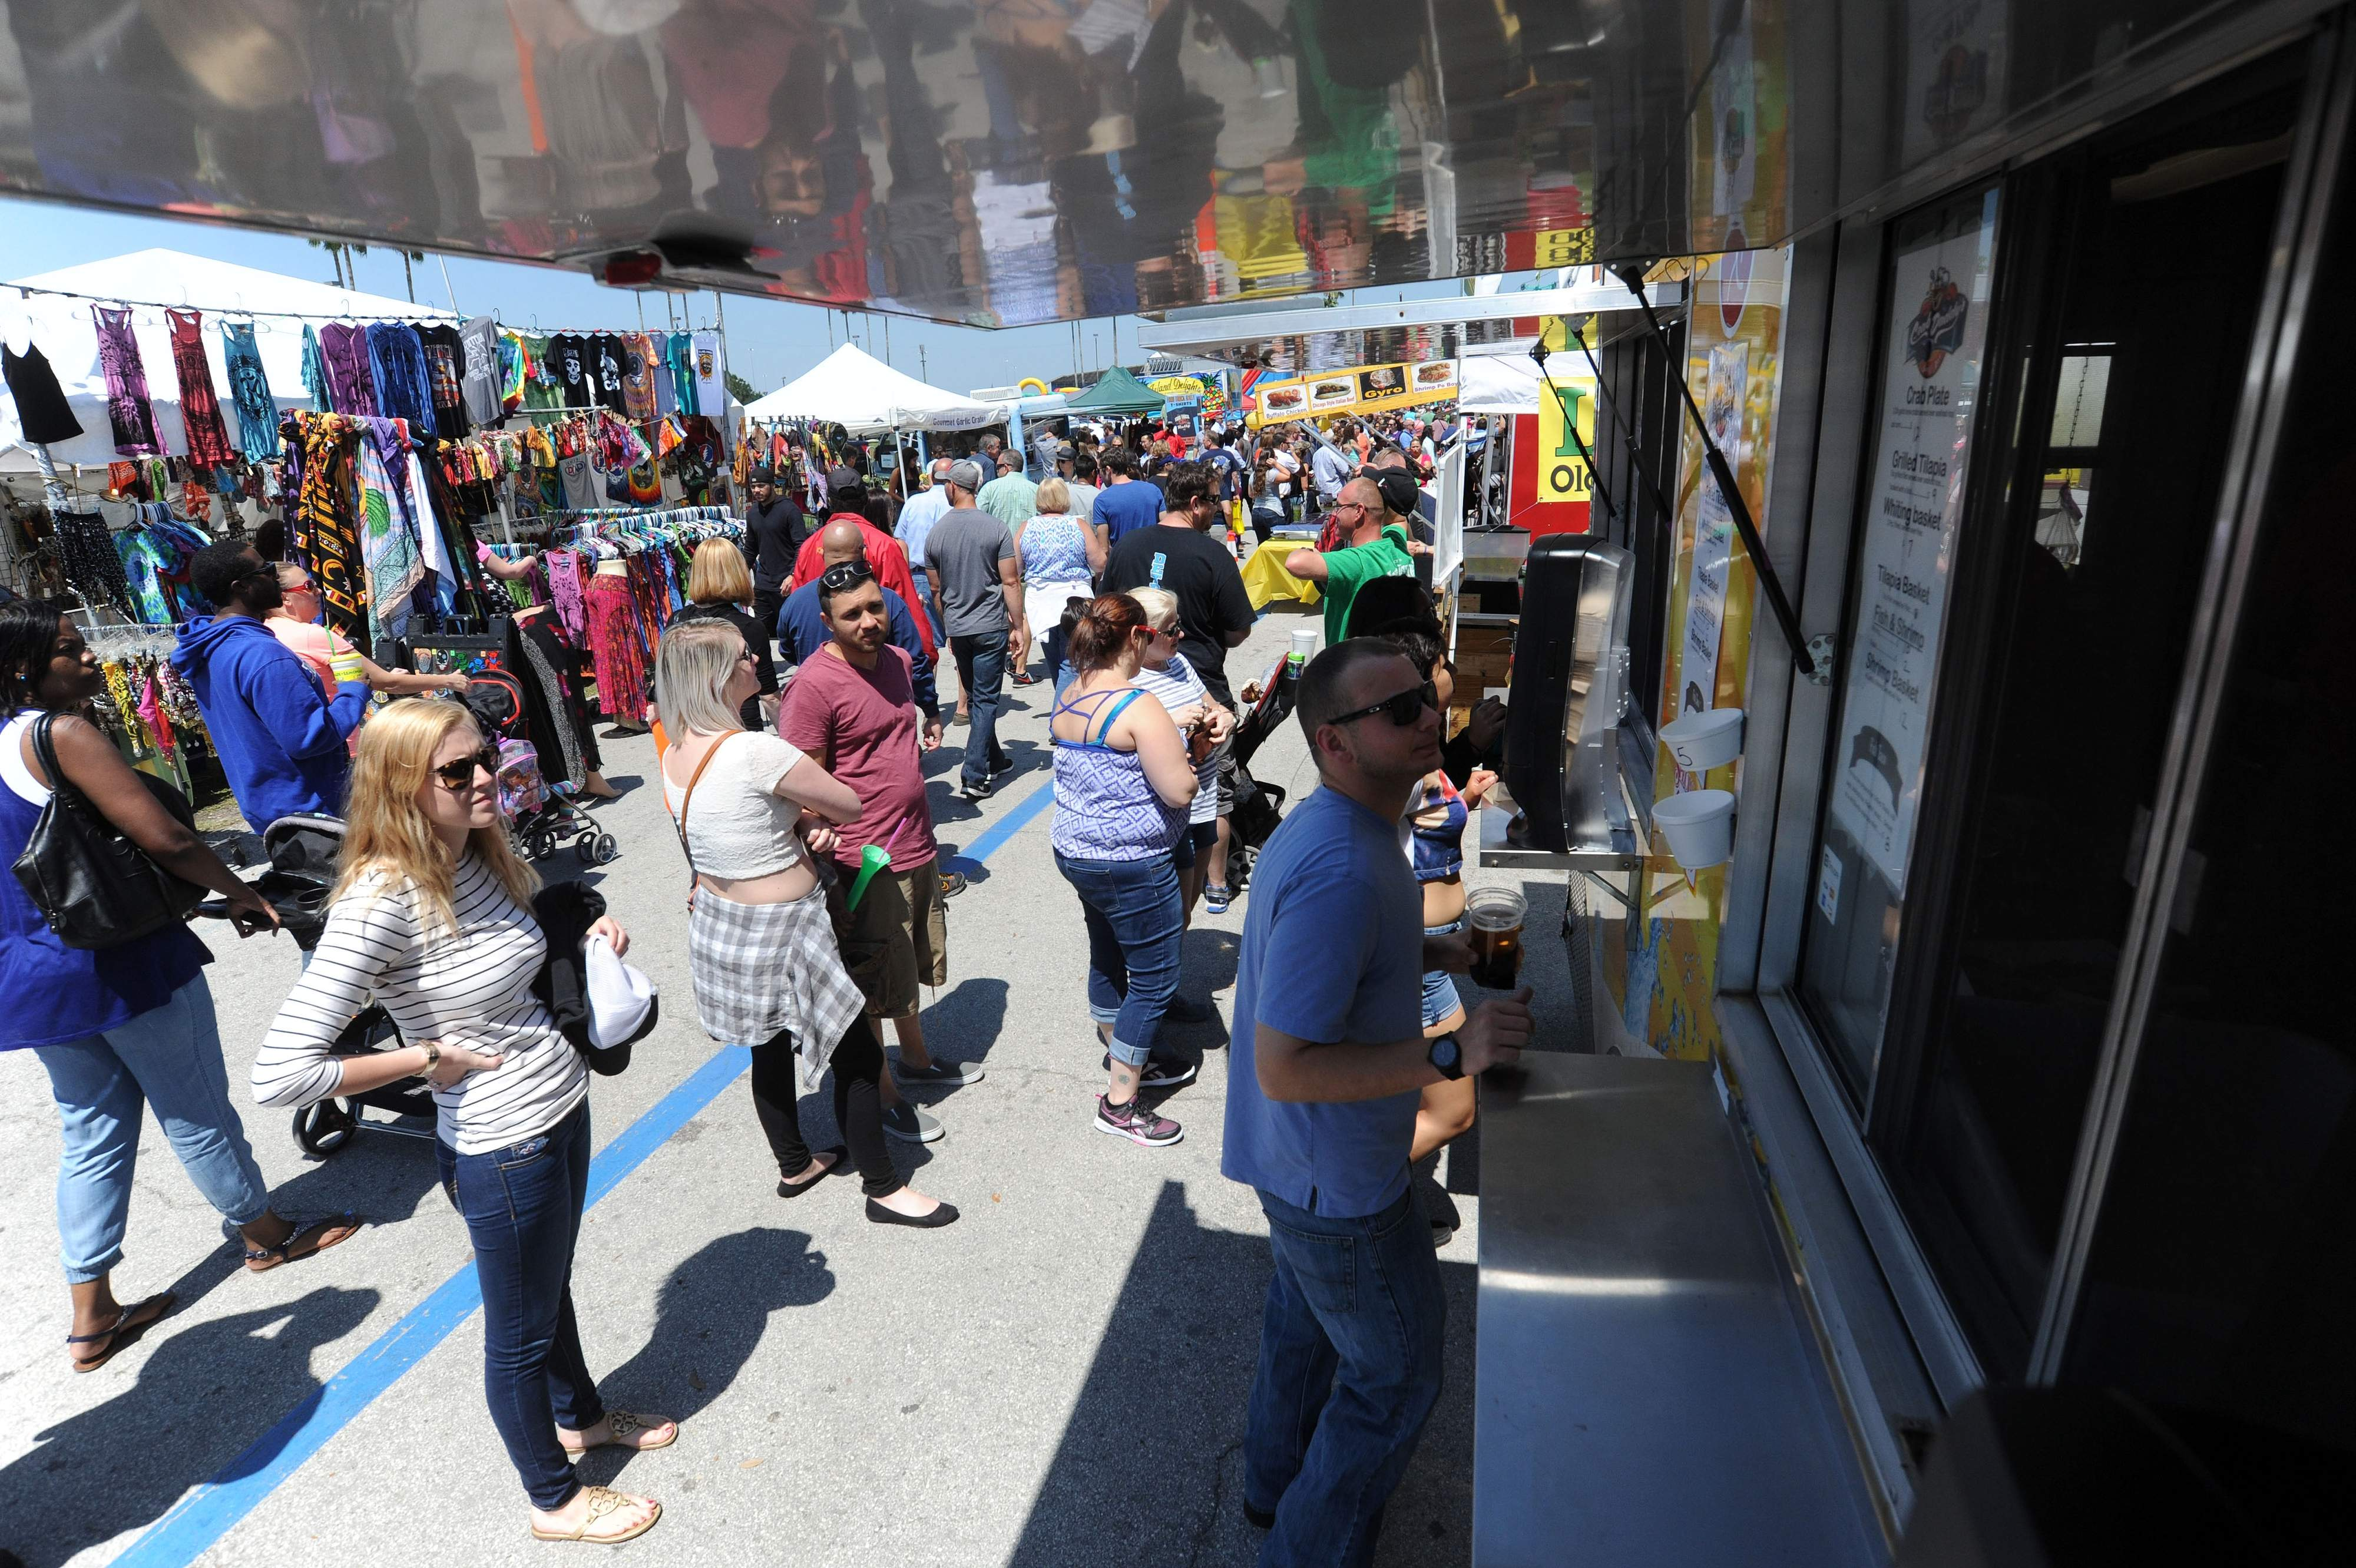 Tampa, FL: 75 trucks participate in 'World's Largest Food Truck Rally' in Tamp